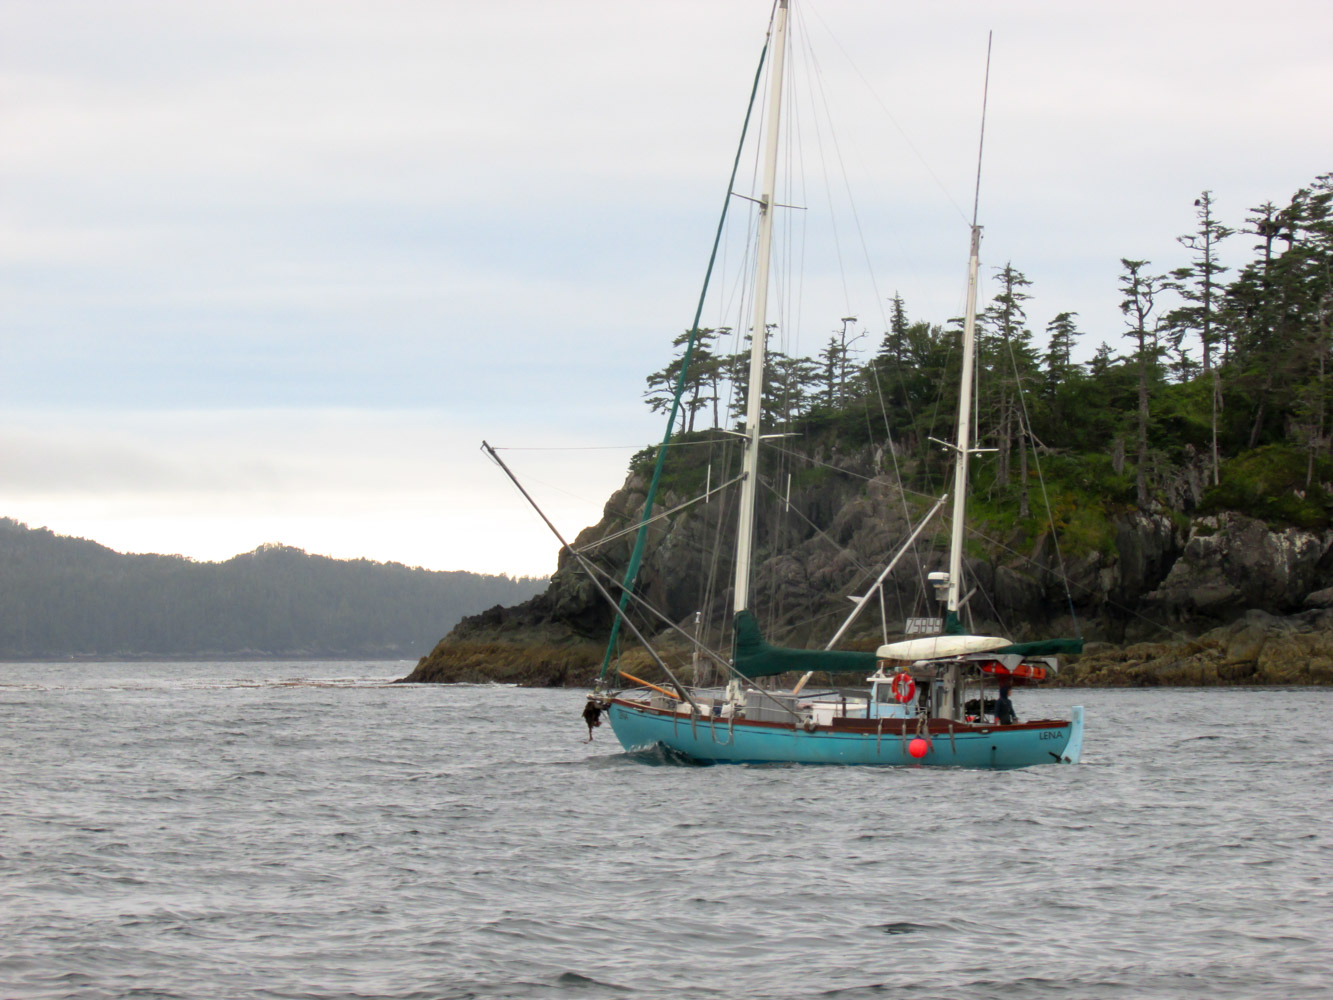 I've spent every summer of my life on the ocean. Here I am in 2016, fishing my power troller the Lena along the outer coast of Prince of Wales island.